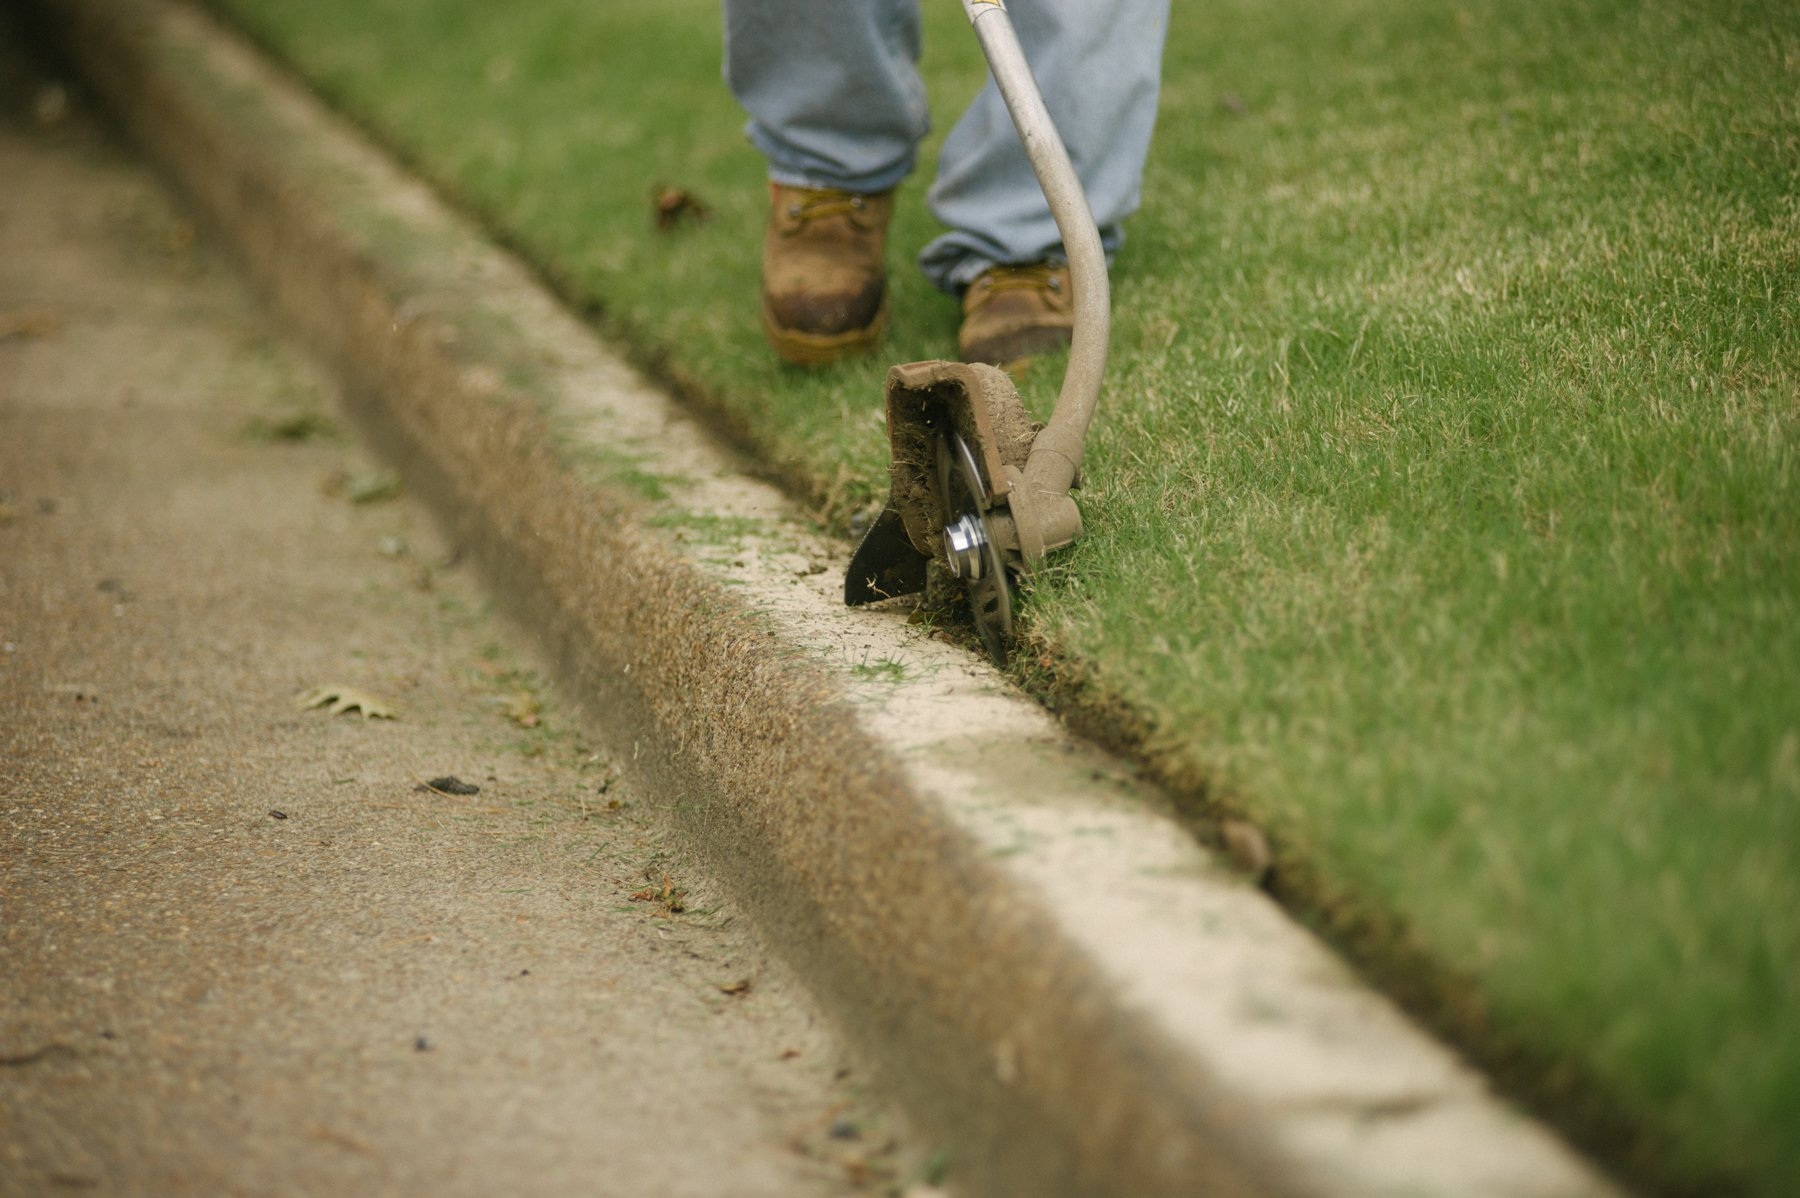 Commercial lawn care team edging